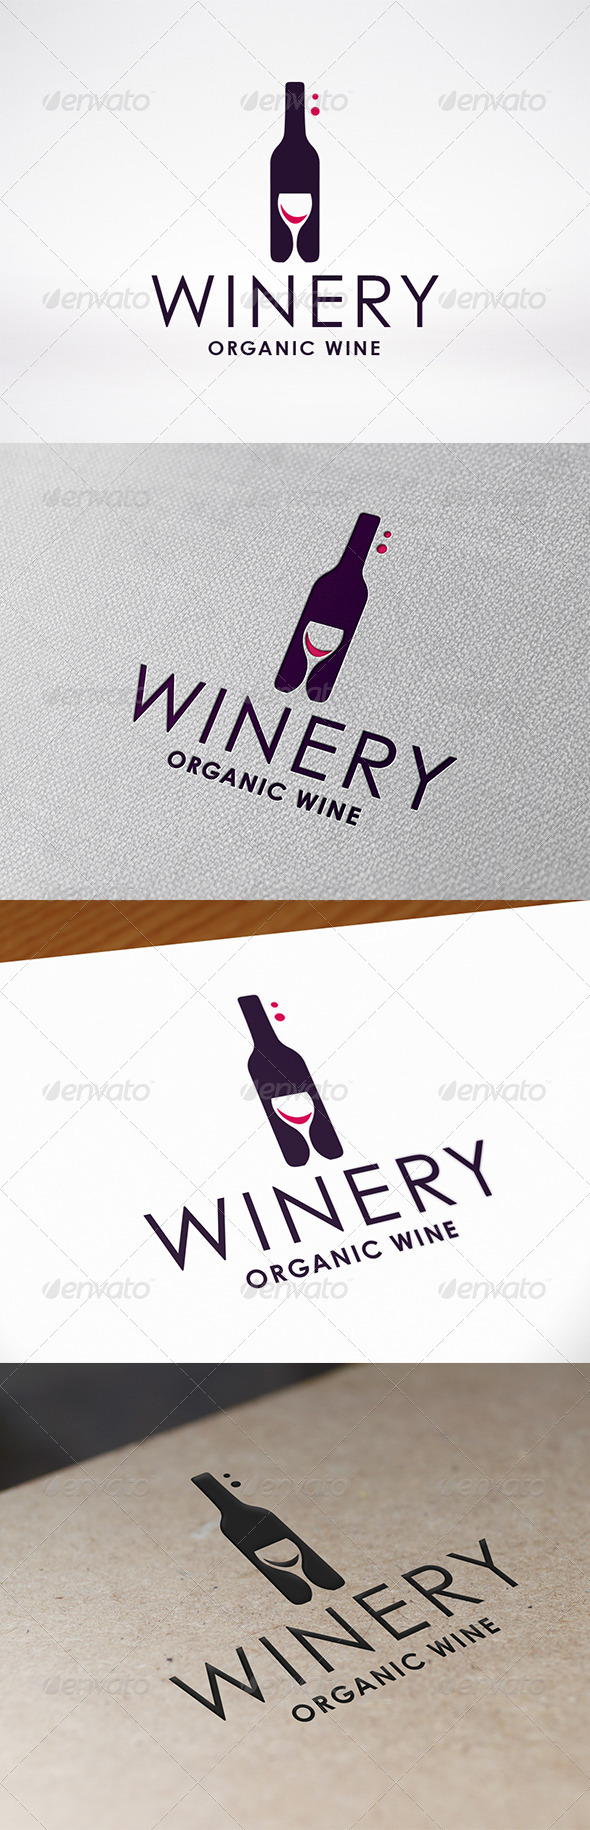 GraphicRiver Winery Logo Template 7521764